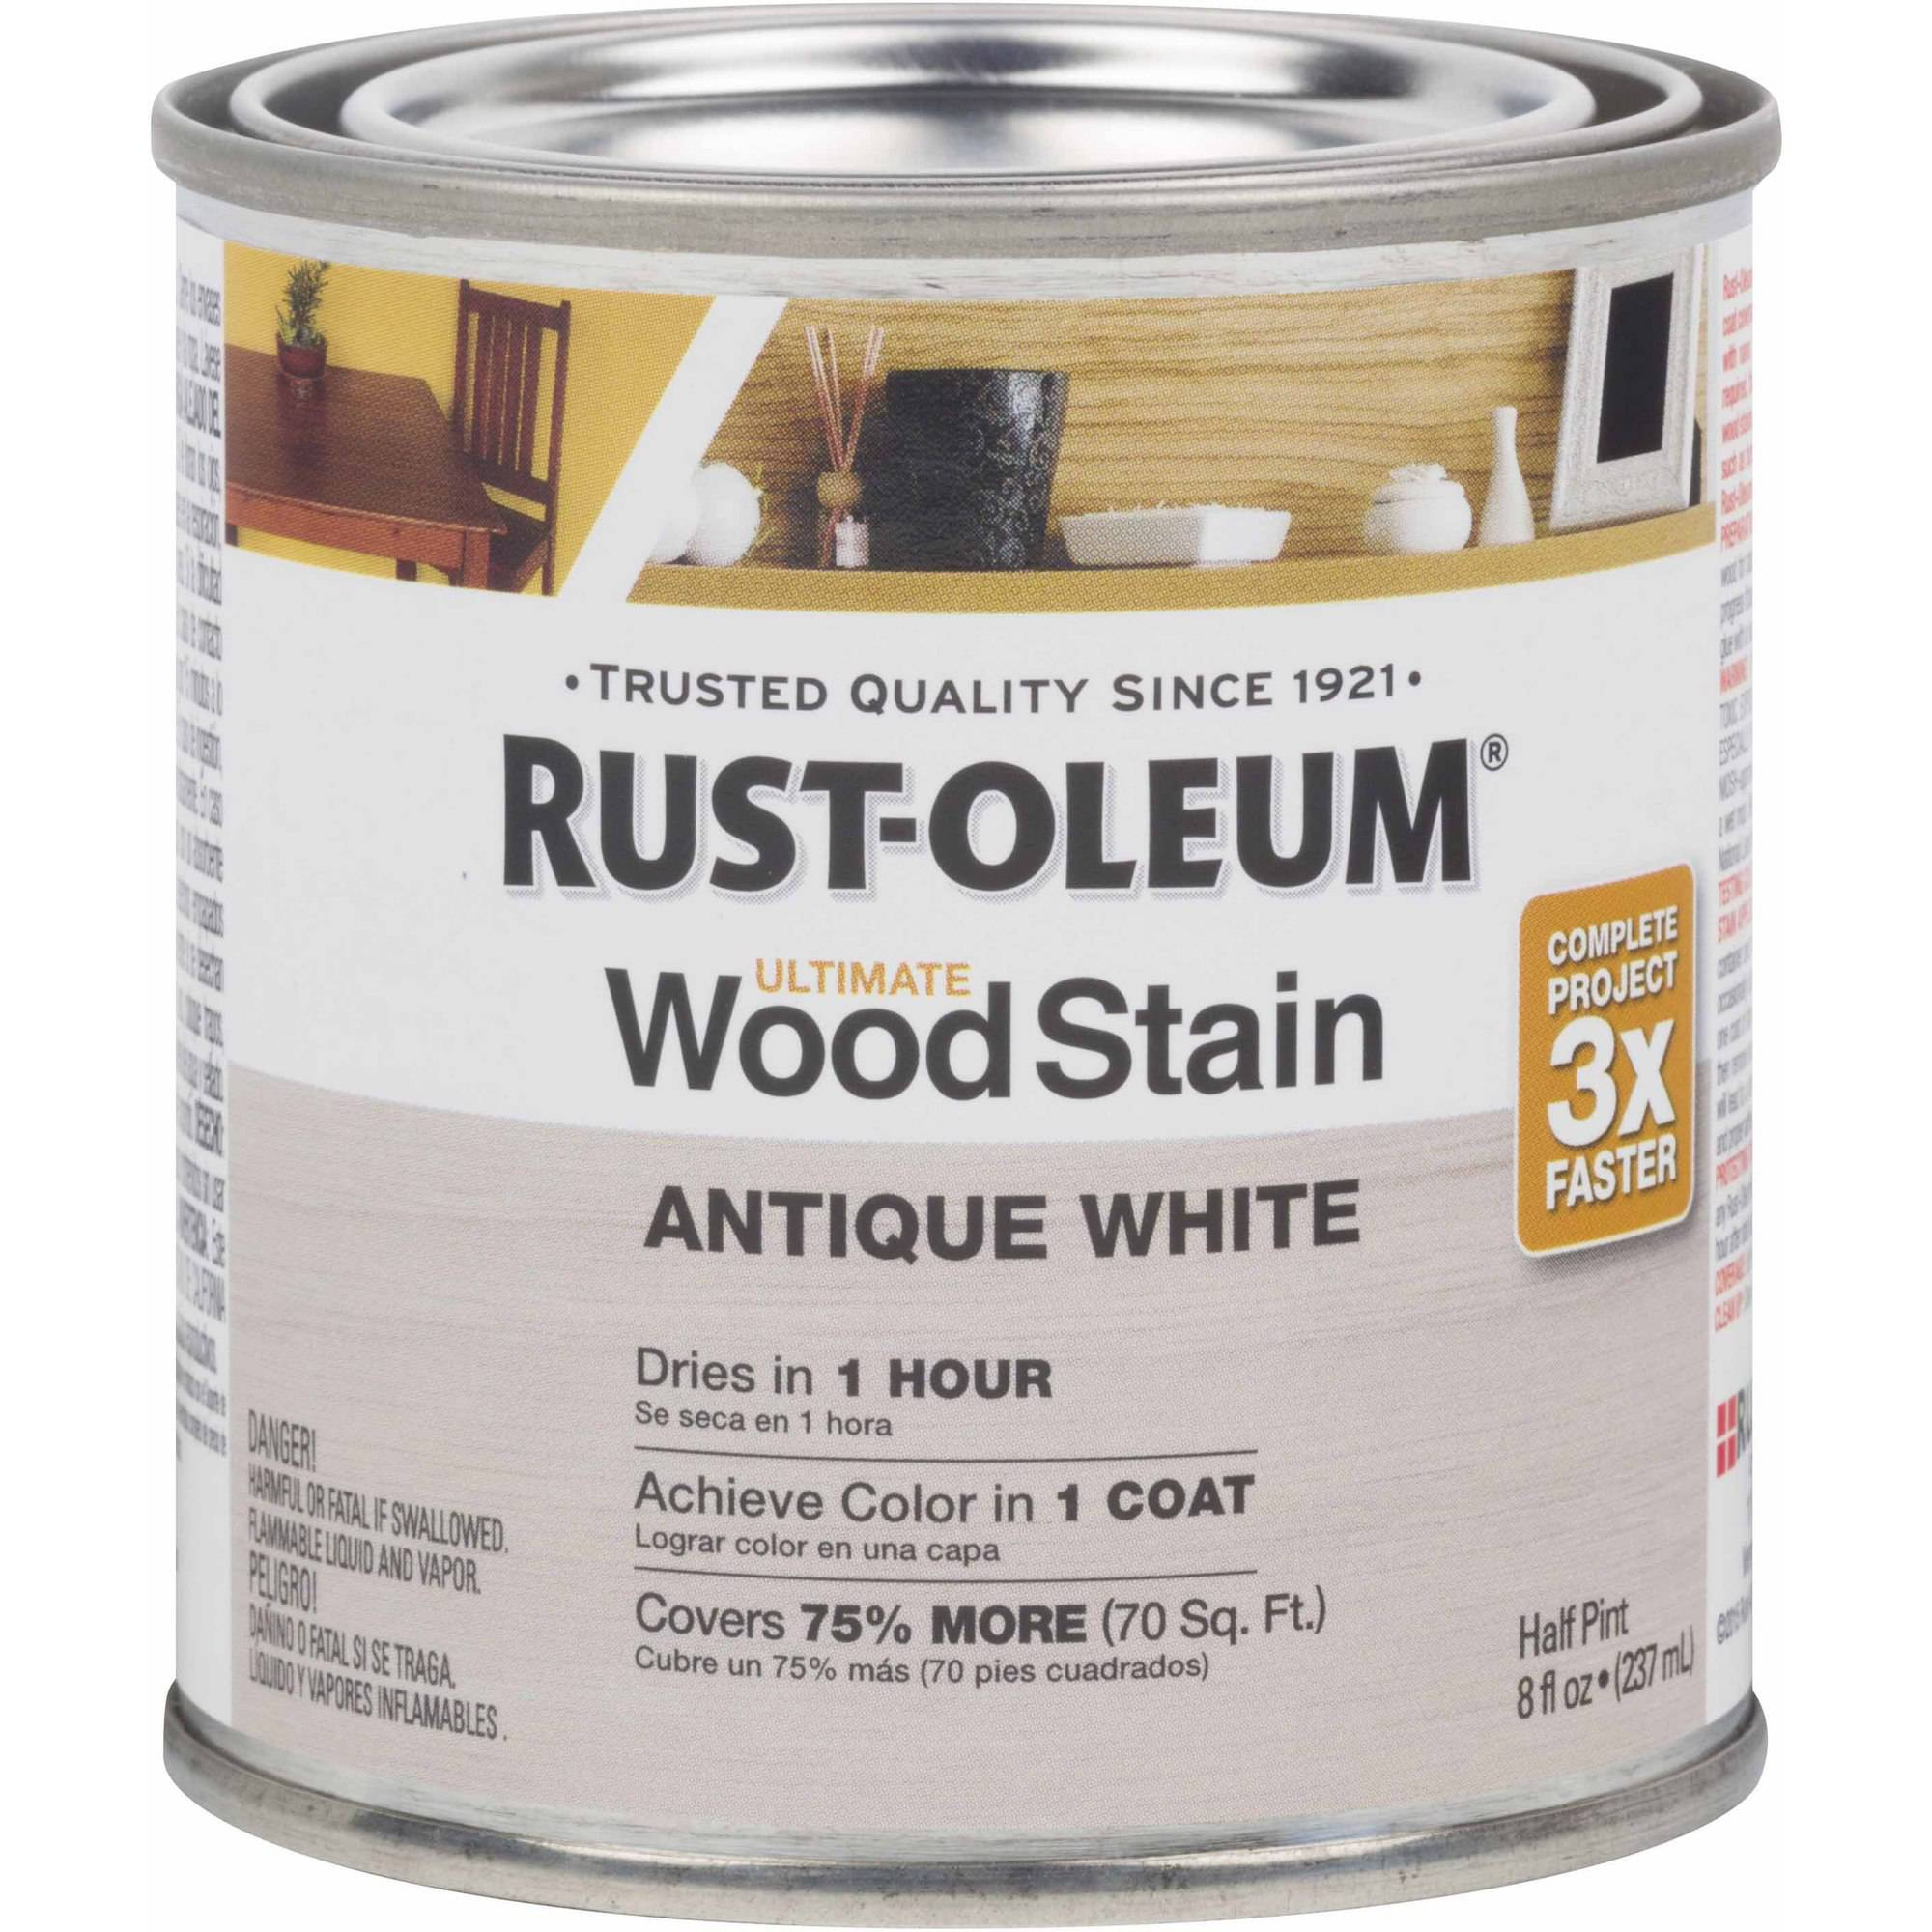 Rust-Oleum Ultimate Wood Stain Half-Pint, Antique White